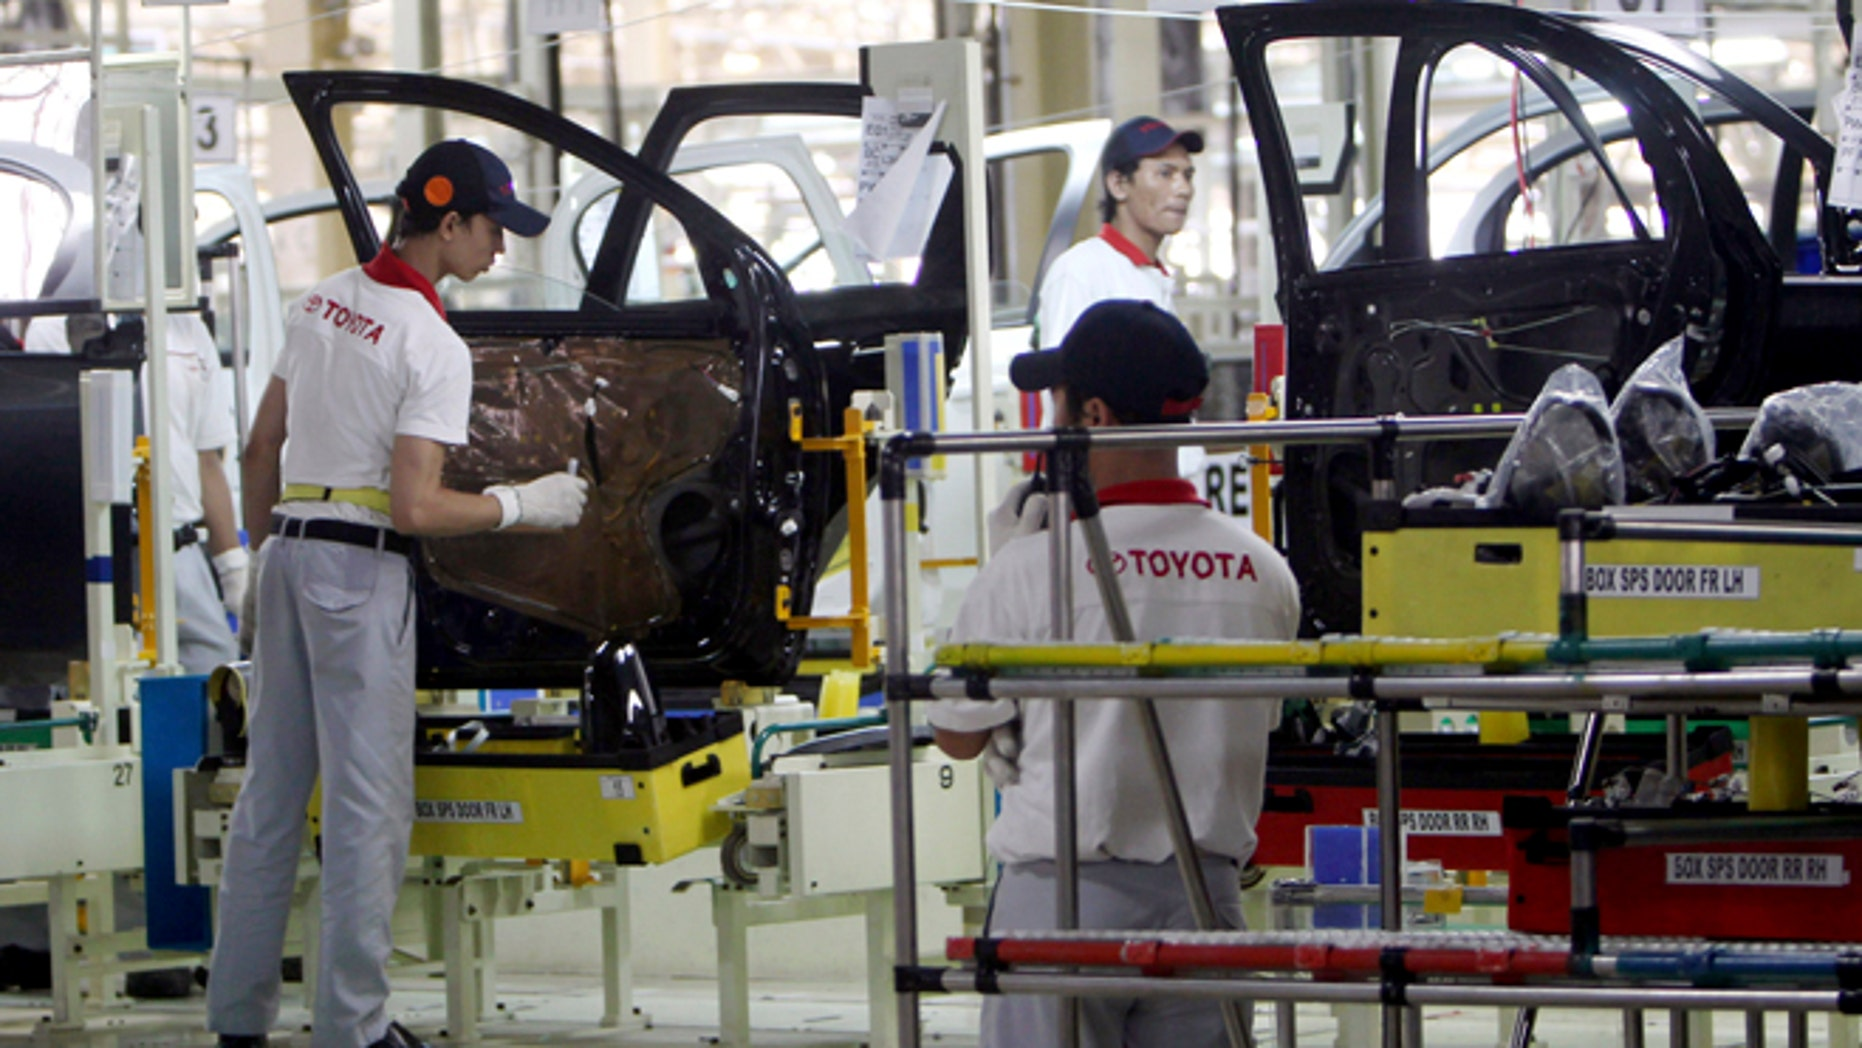 FILE - In this March 15, 2013 file photo, Indonesian workers assemble passenger cars at the new Toyota plant in Karawang, West Java, Indonesia after Toyota officially opened their second manufacturing plant in the country. Toyota is building two new auto plants, one in Mexico and the other in China, ending a three-year hiatus from such ambitions that the Japanese automaker voluntarily imposed on itself after a massive recall scandal. Toyota Motor Corp. announced Wednesday, April 15, 2015 it will invest $1 billion for the plant in Guanajuato, Mexico, creating 2,000 jobs, to make the Corolla subcompact - one of Toyotaâs biggest hits. (AP Photo/Tatan Syuflana, File)